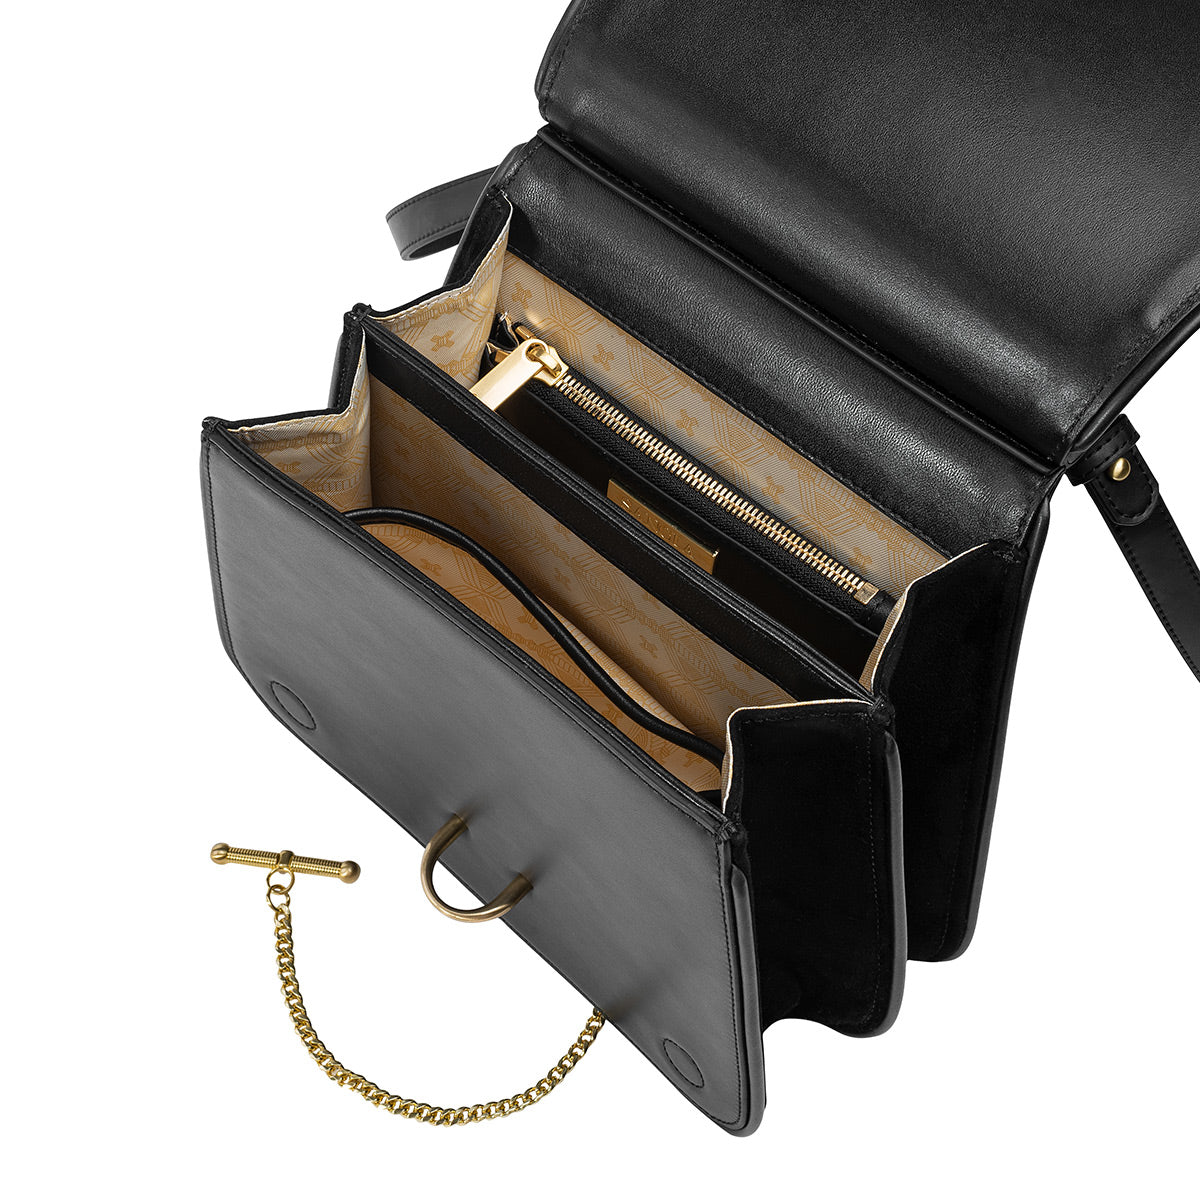 THE LAUREL SATCHEL